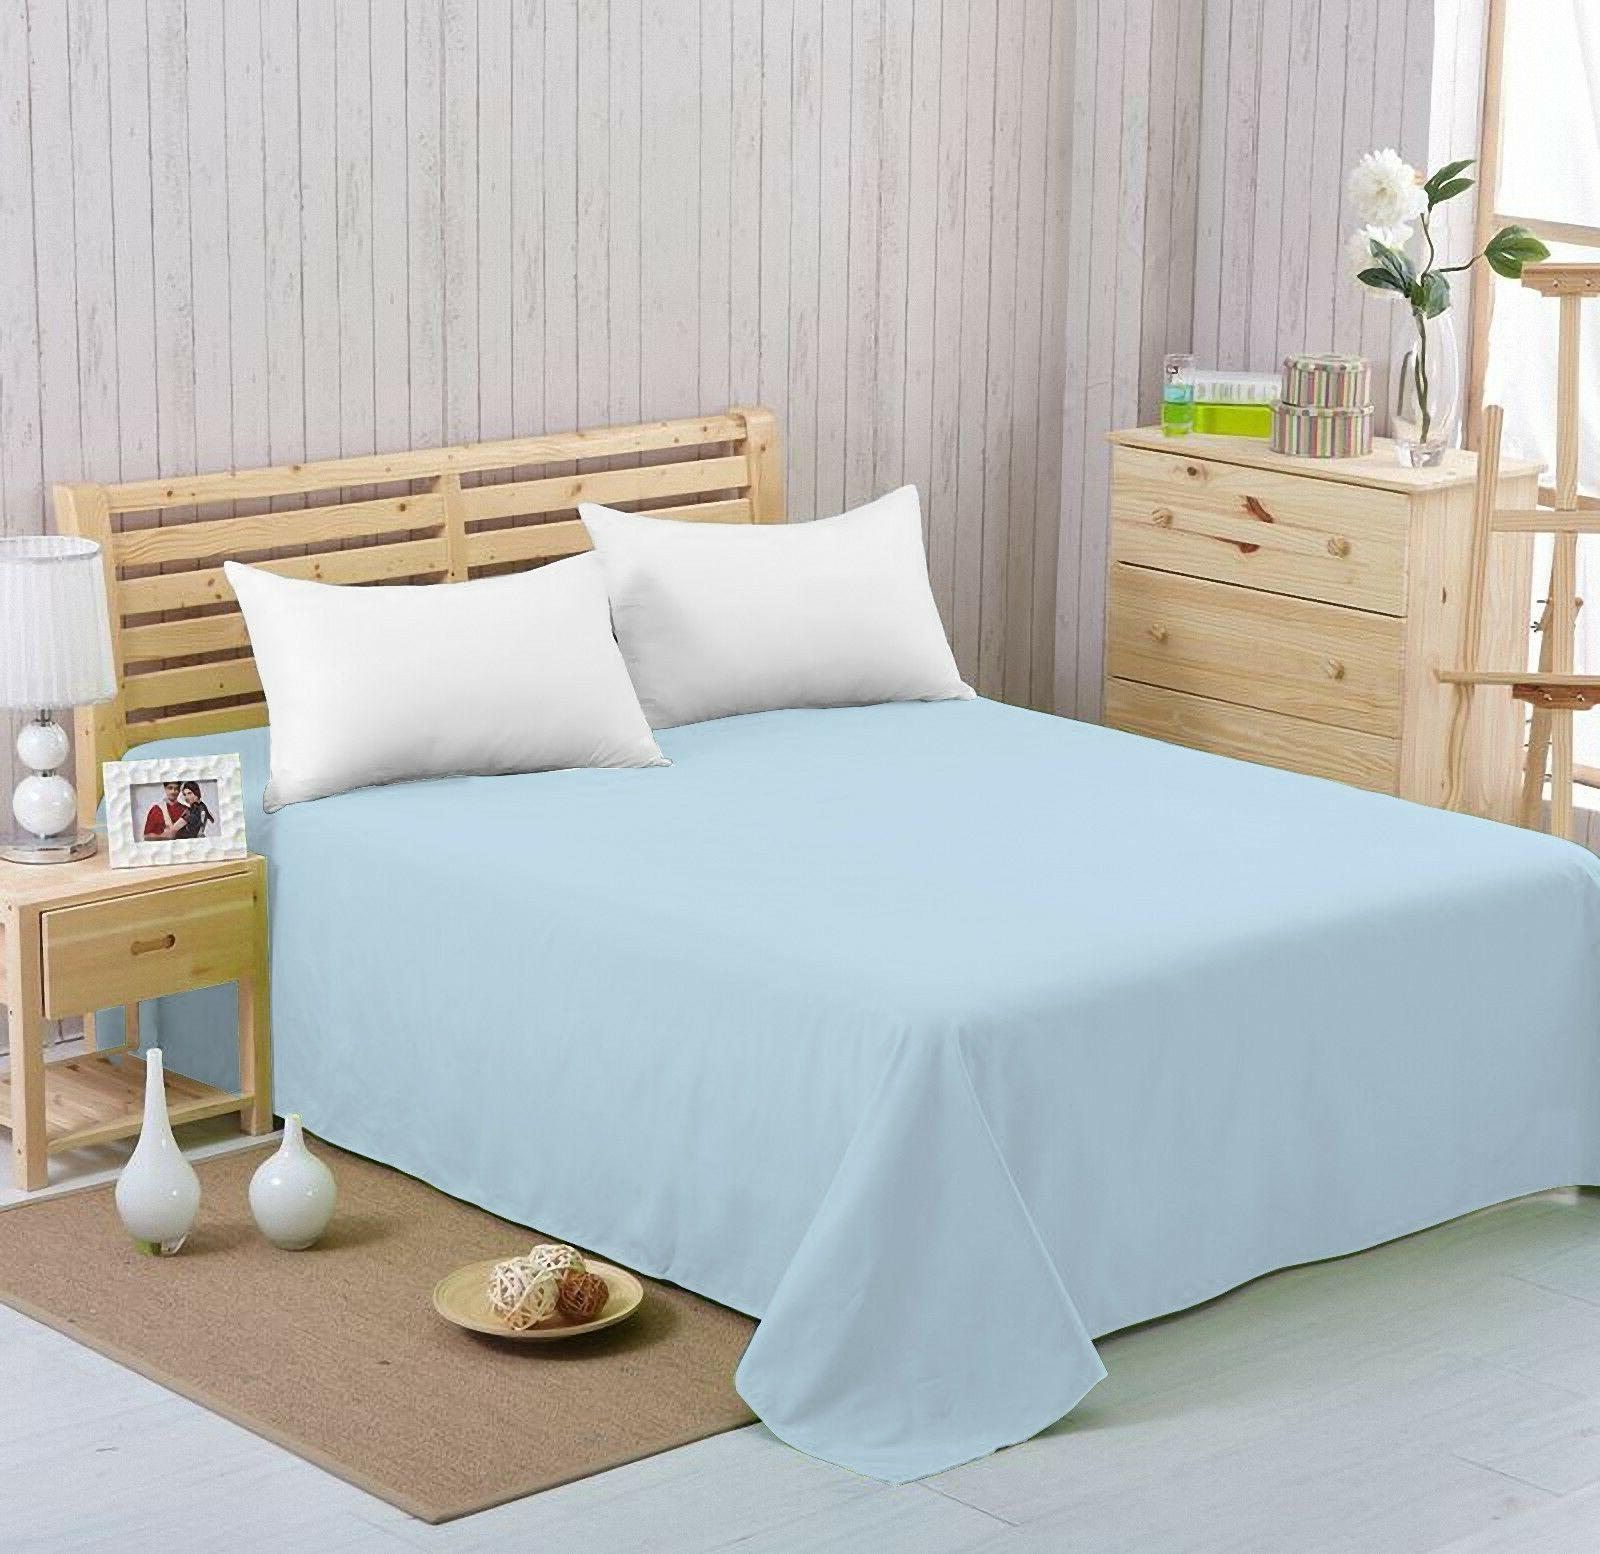 Flat sheet Extra Soft,Breathable& Microfiber Quality,